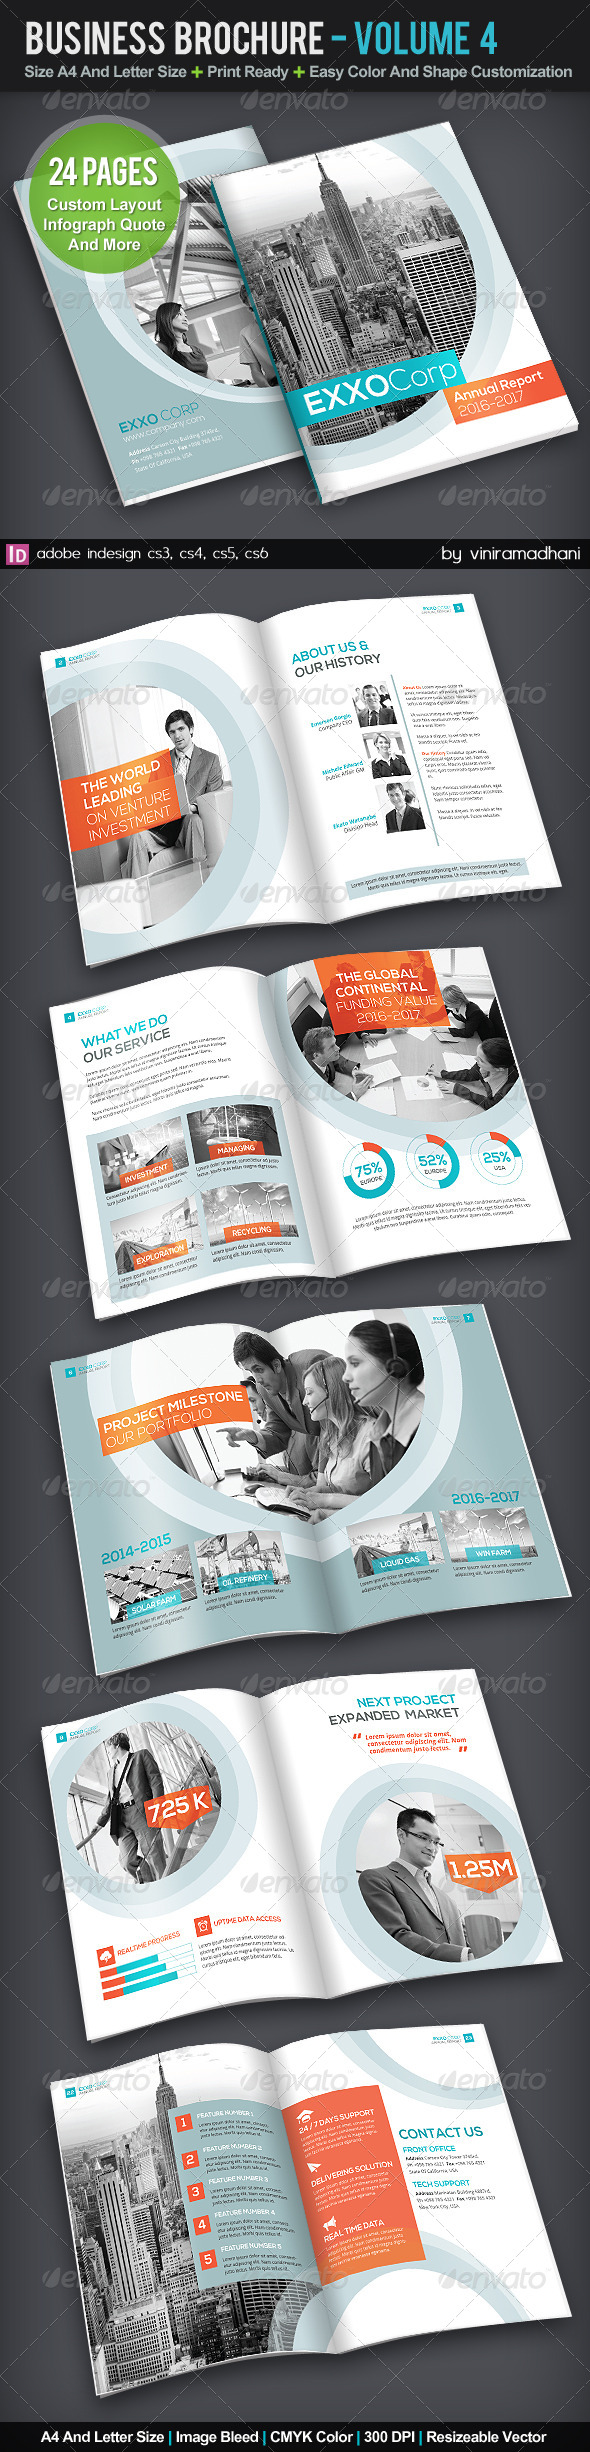 GraphicRiver Business Brochure Volume 4 5787130